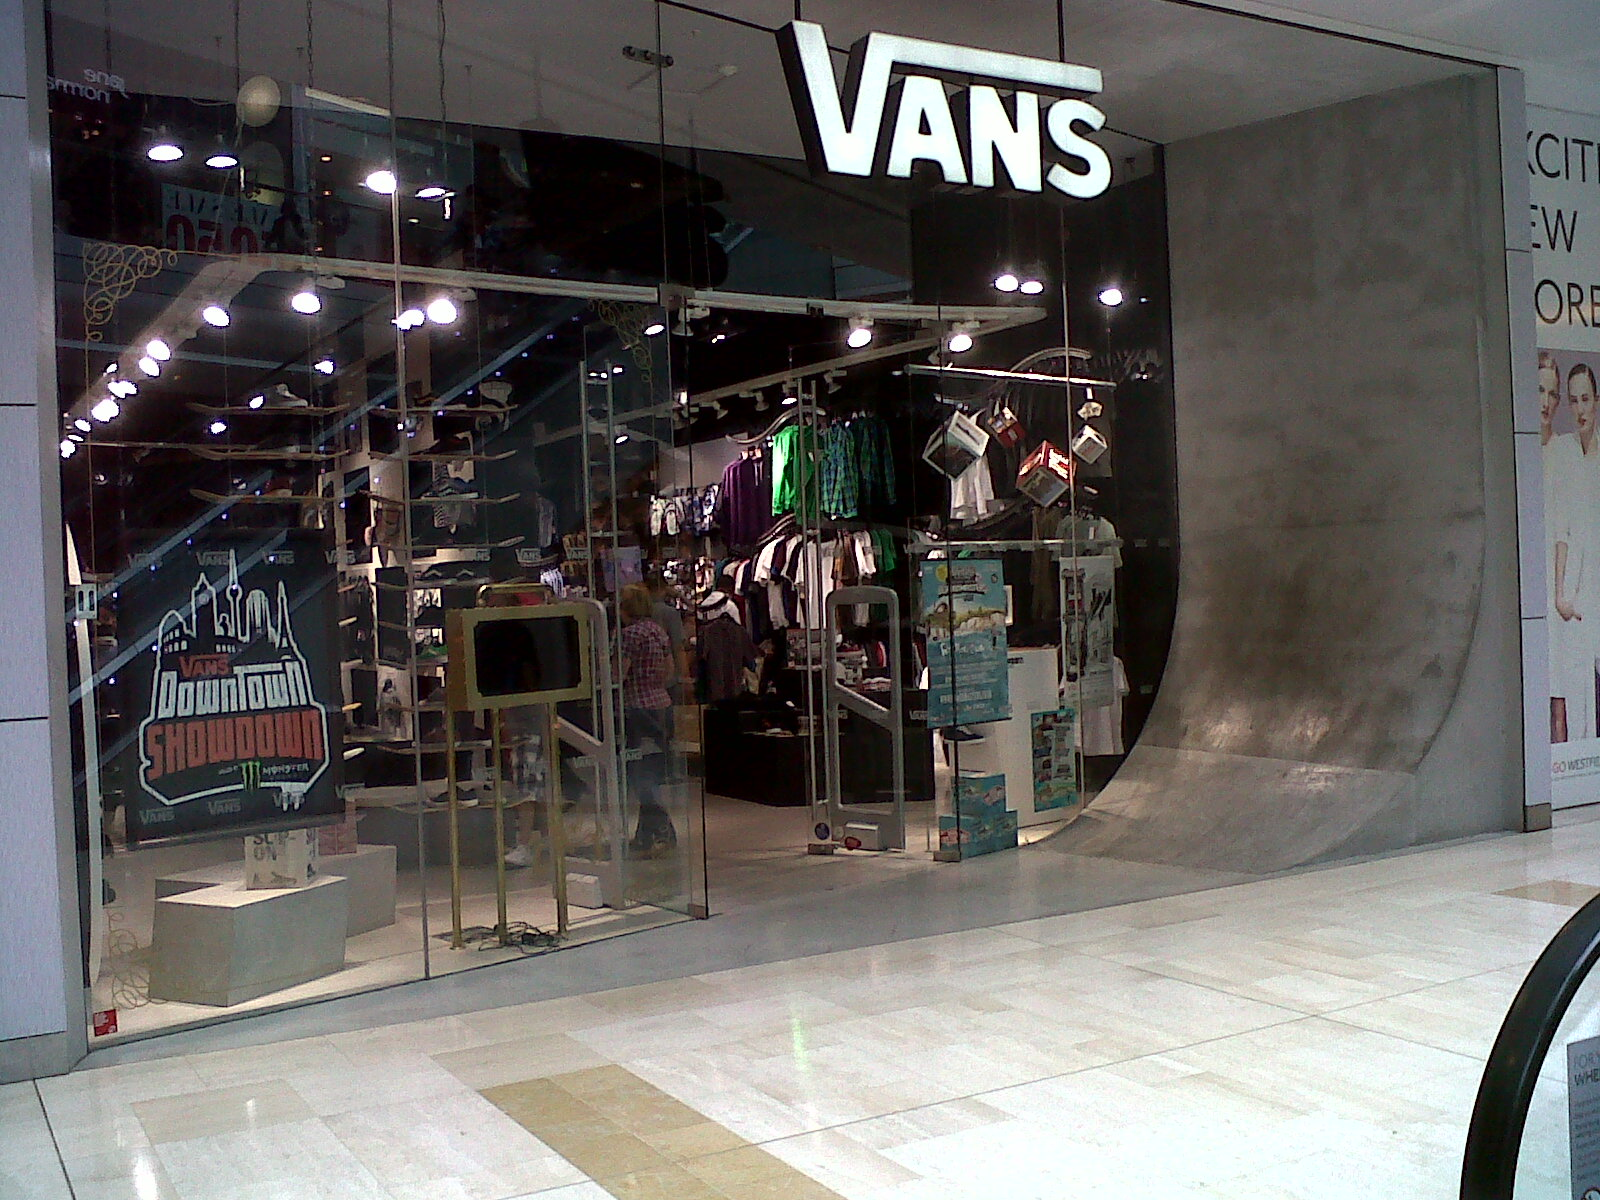 Vans Store Wallpapers High Quality   Download Free